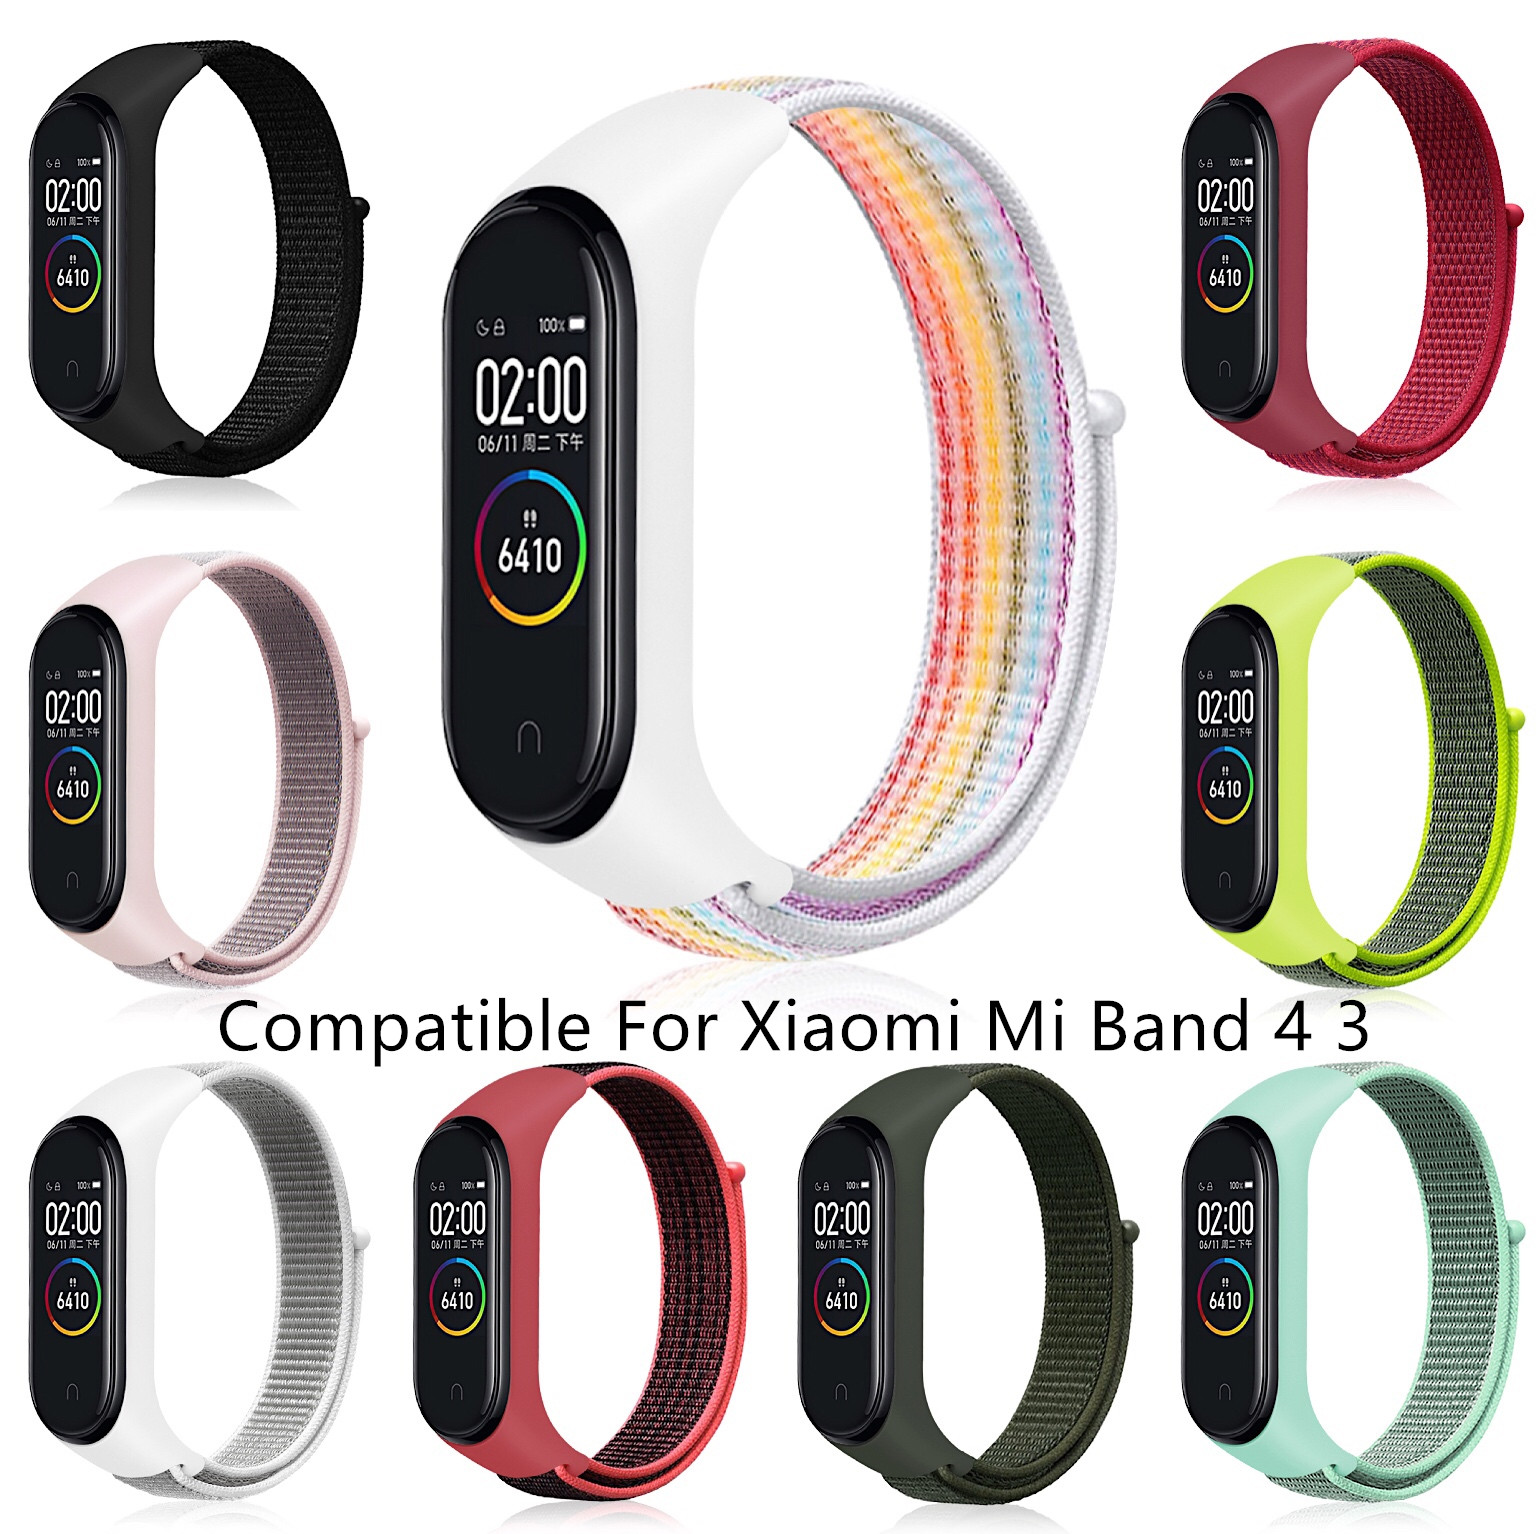 YAYUU Nylon Loop Replaceable WristStrap For Xiaomi Mi Band 4 Sports Watch Band Breathable Strap For Xiaomi Mi Band 3 Smart Watch